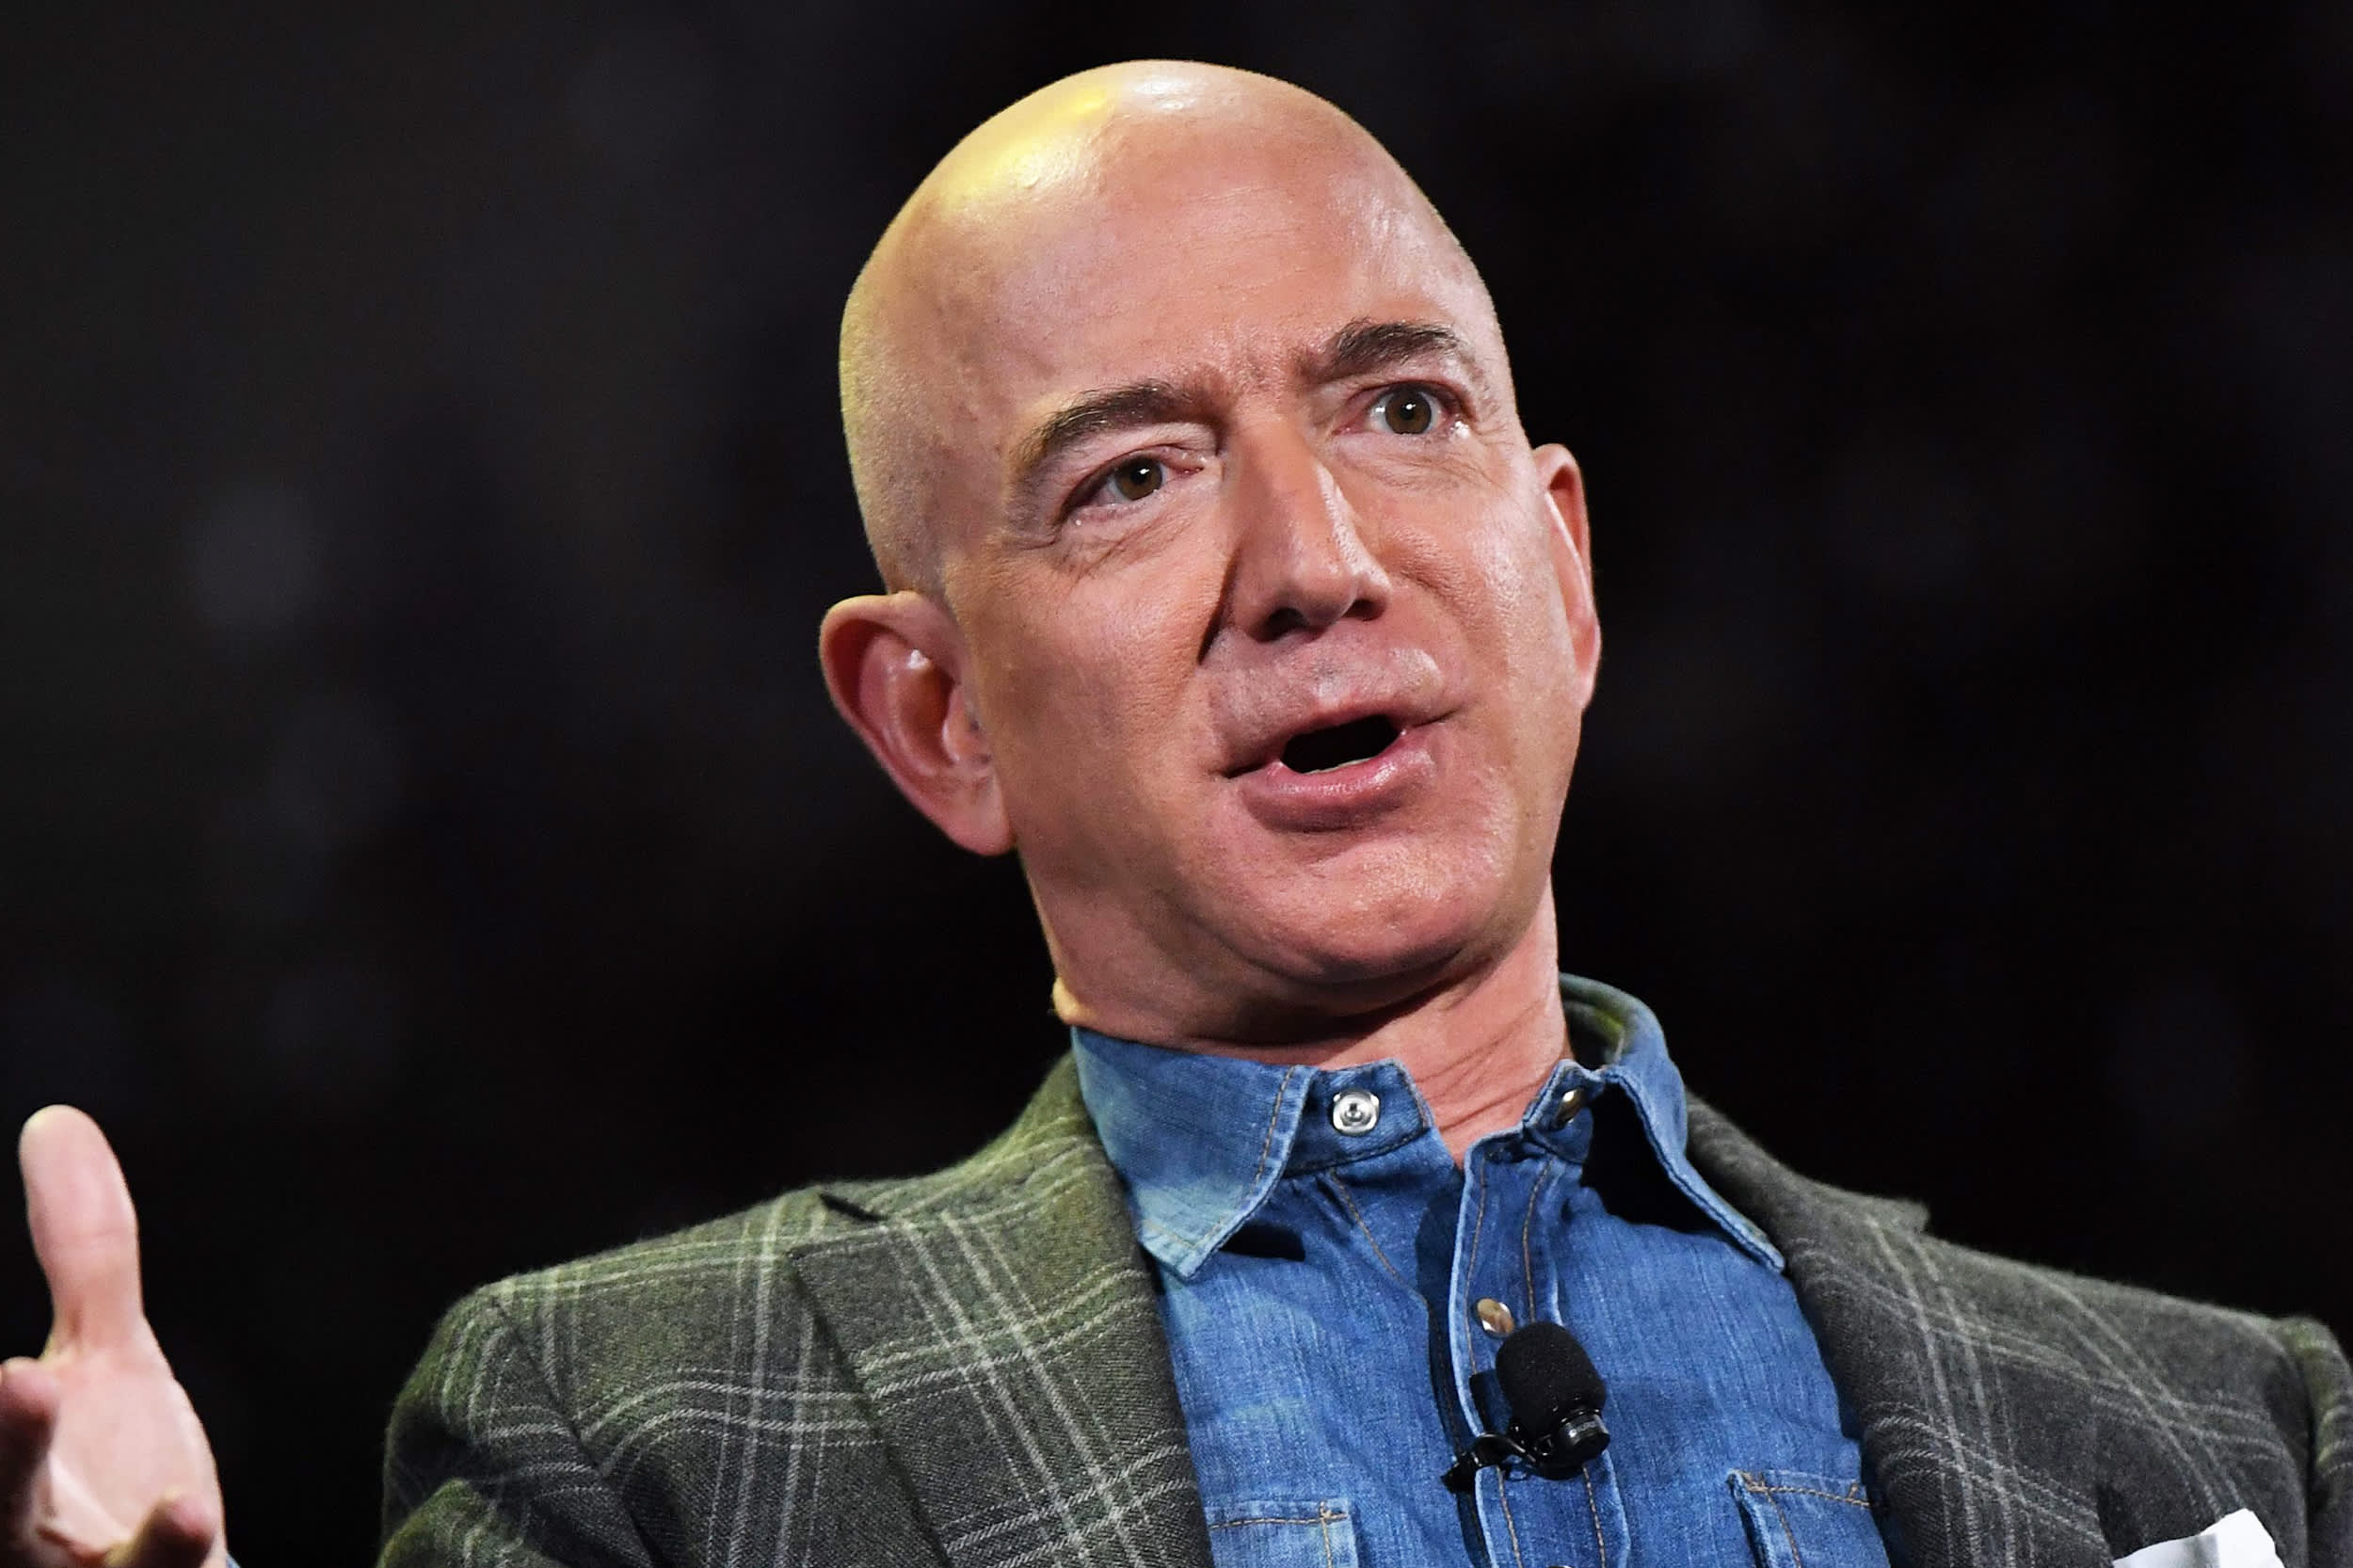 Amazon says its facial recognition can now identify fear